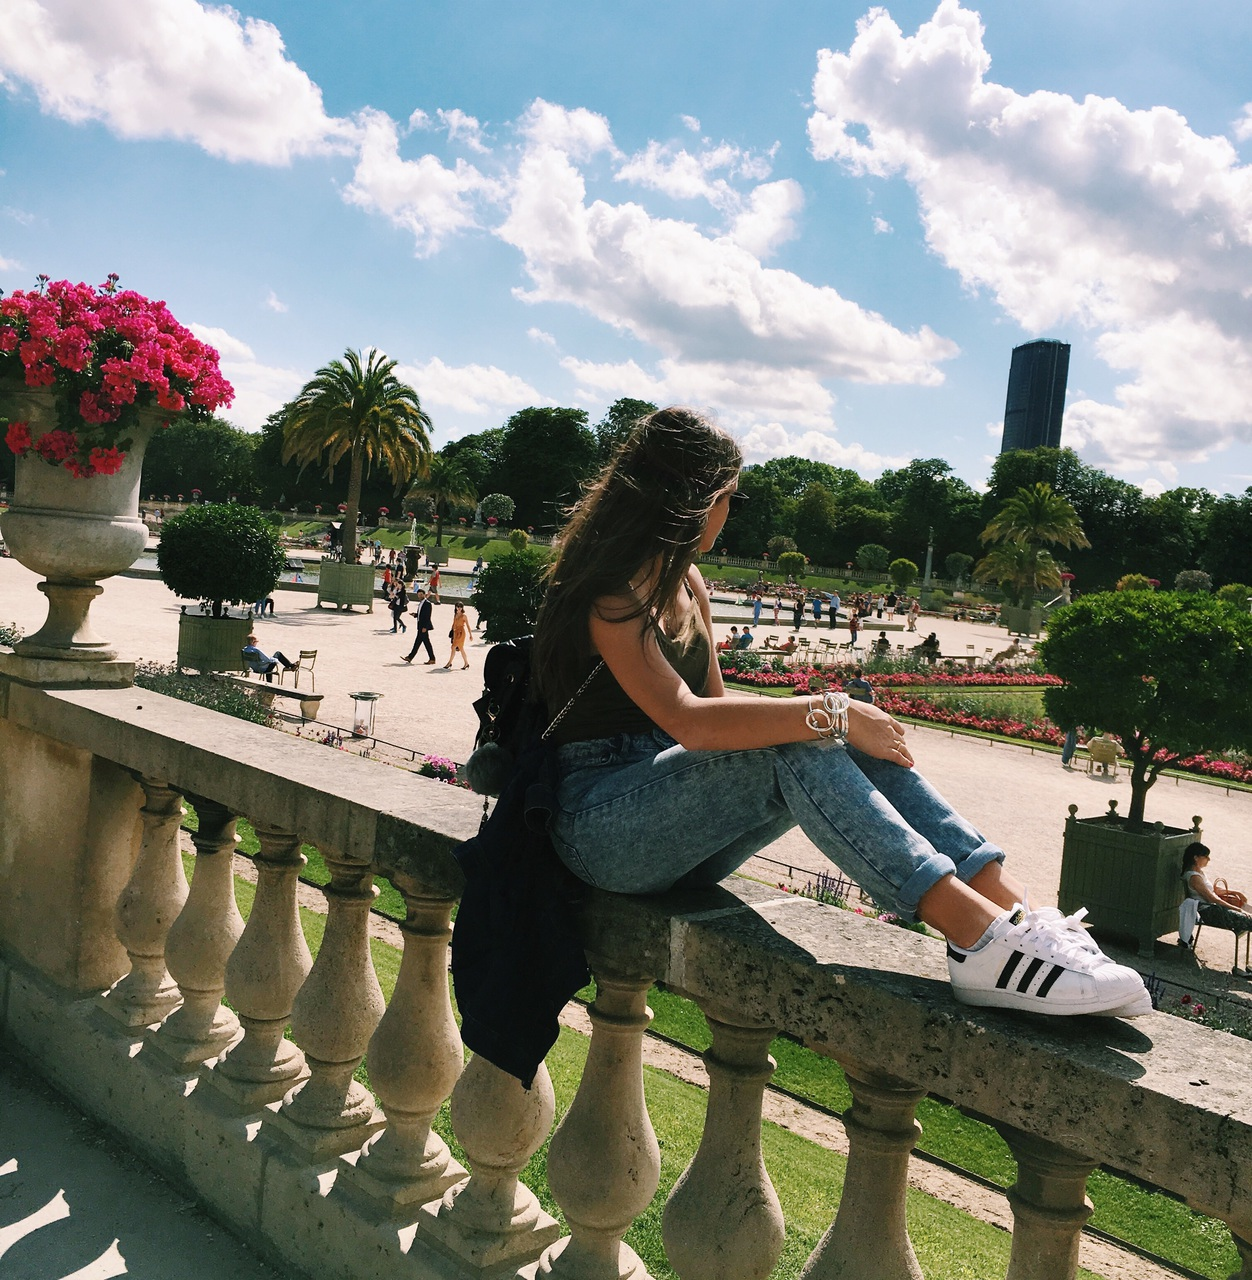 adidas, fashion, flowers, girl, jeans